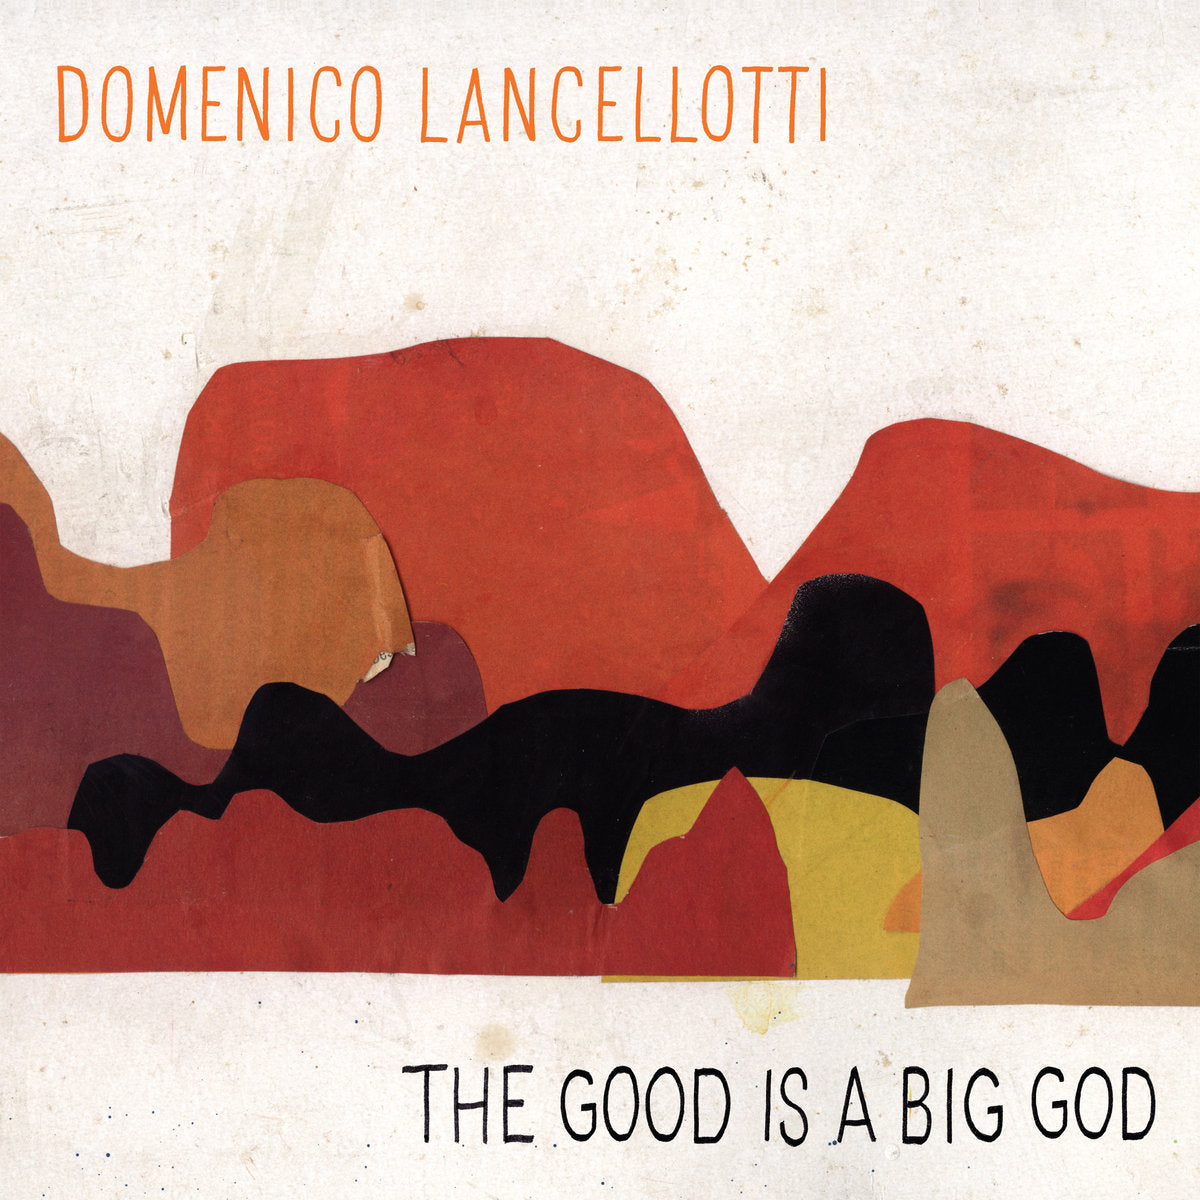 Domenico Lancellotti - The Good is a Big God LP